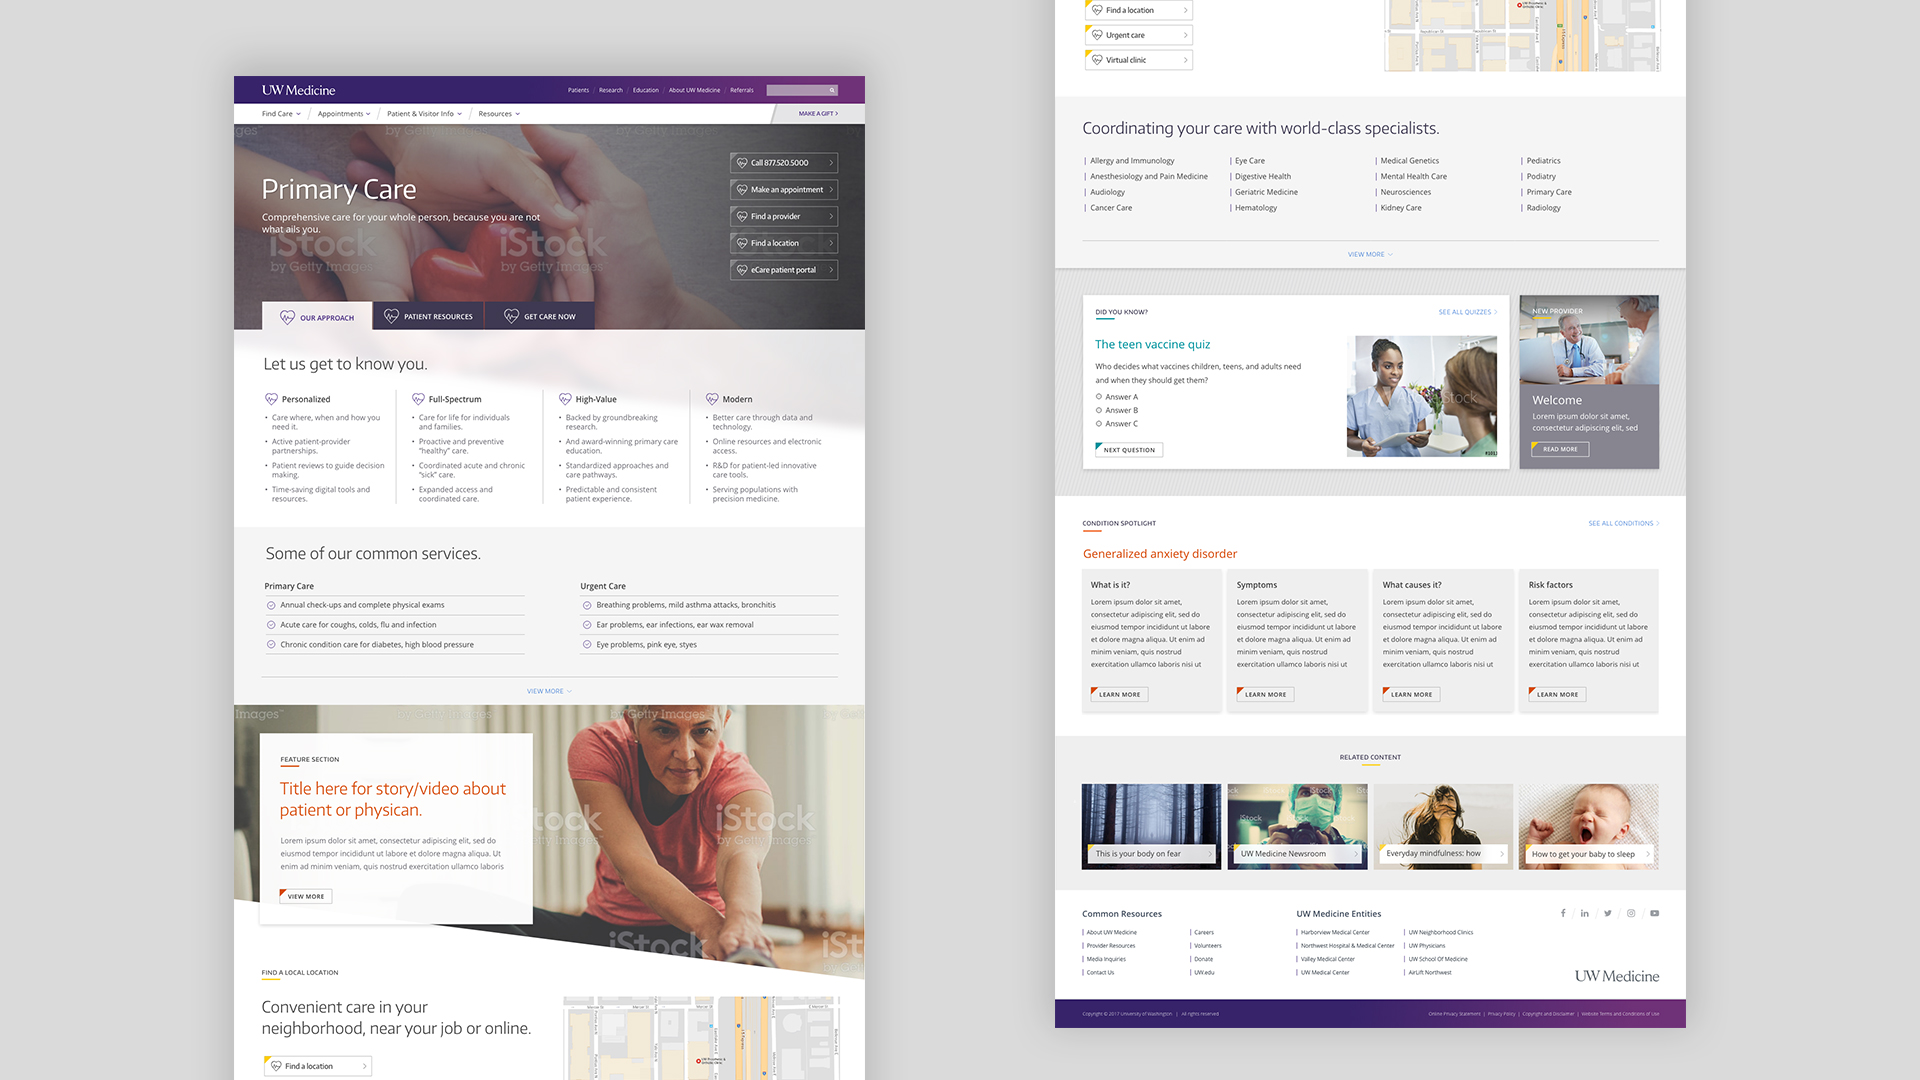 UW Medicine Primary Care Desktop Layout